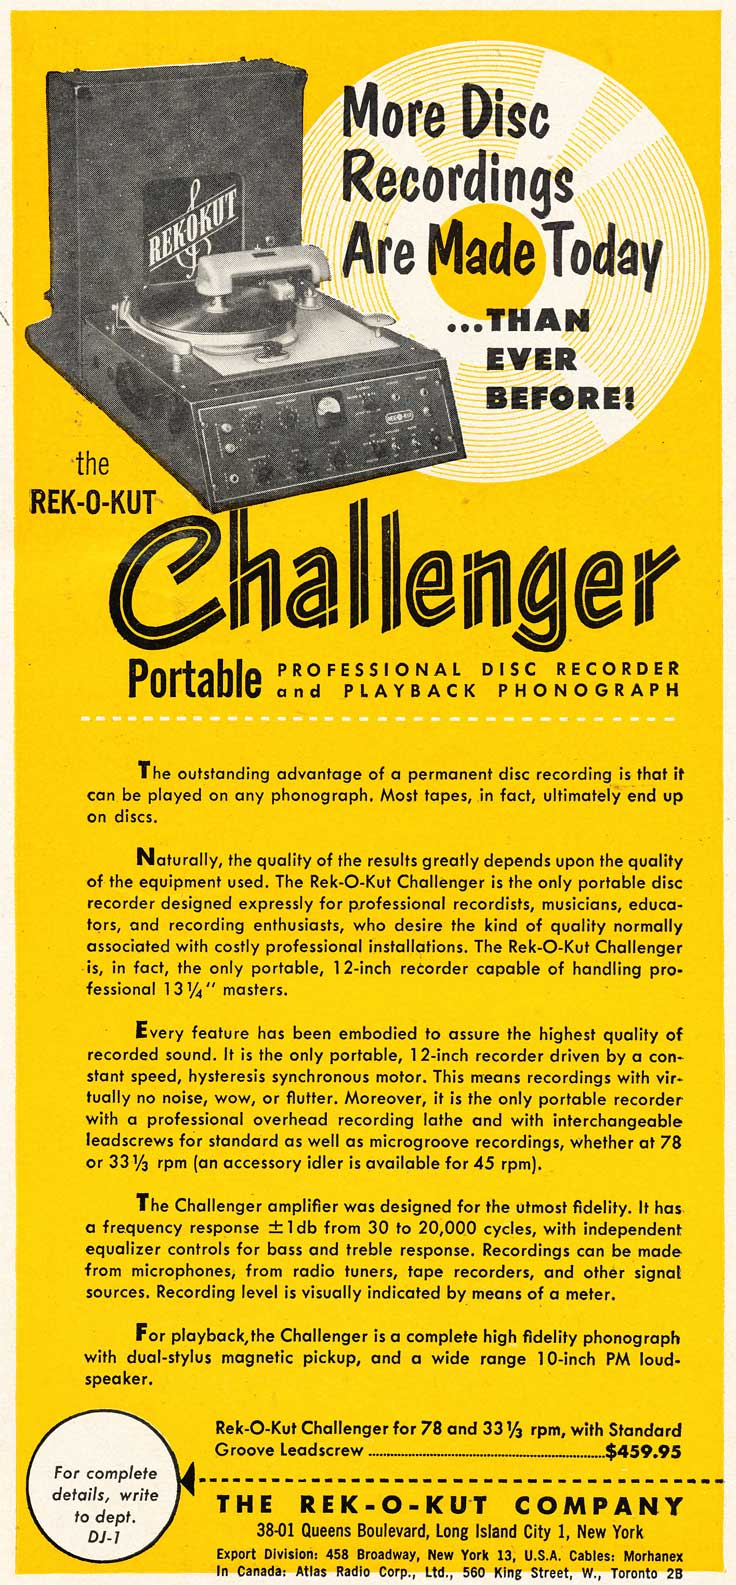 1953 Rek-O-Kut record cutter ad in Reel2ReelTexas.com's vintage recording collection